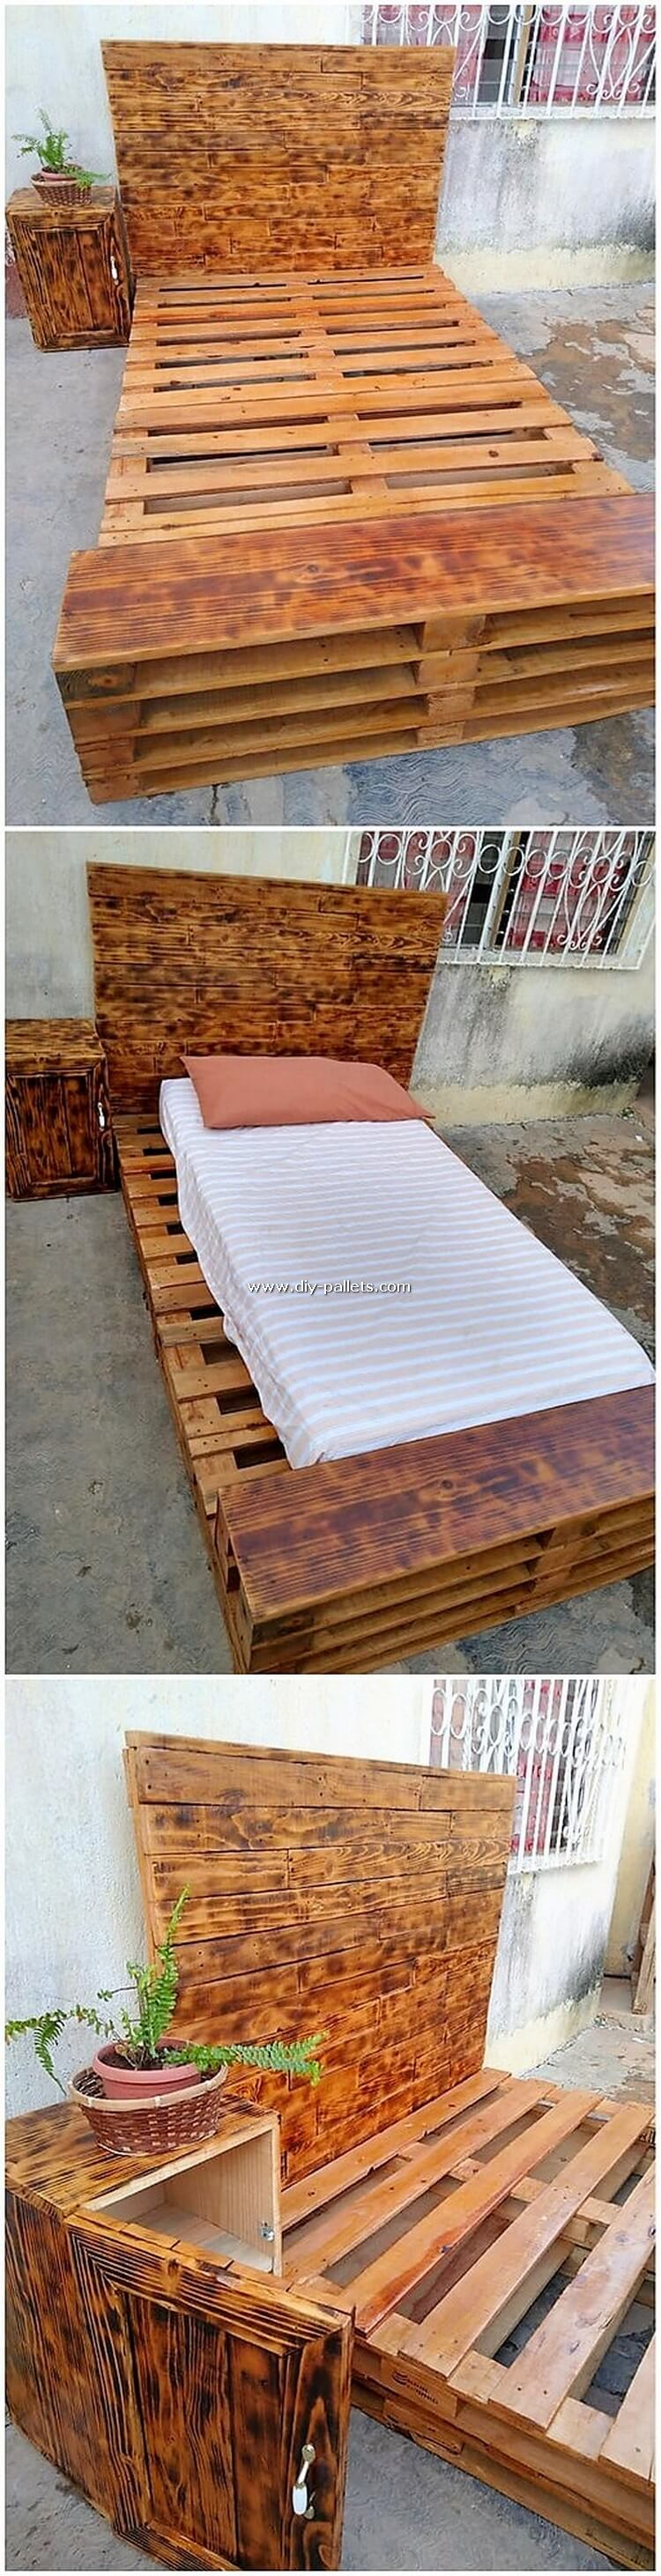 Pallet Bed with Side Table